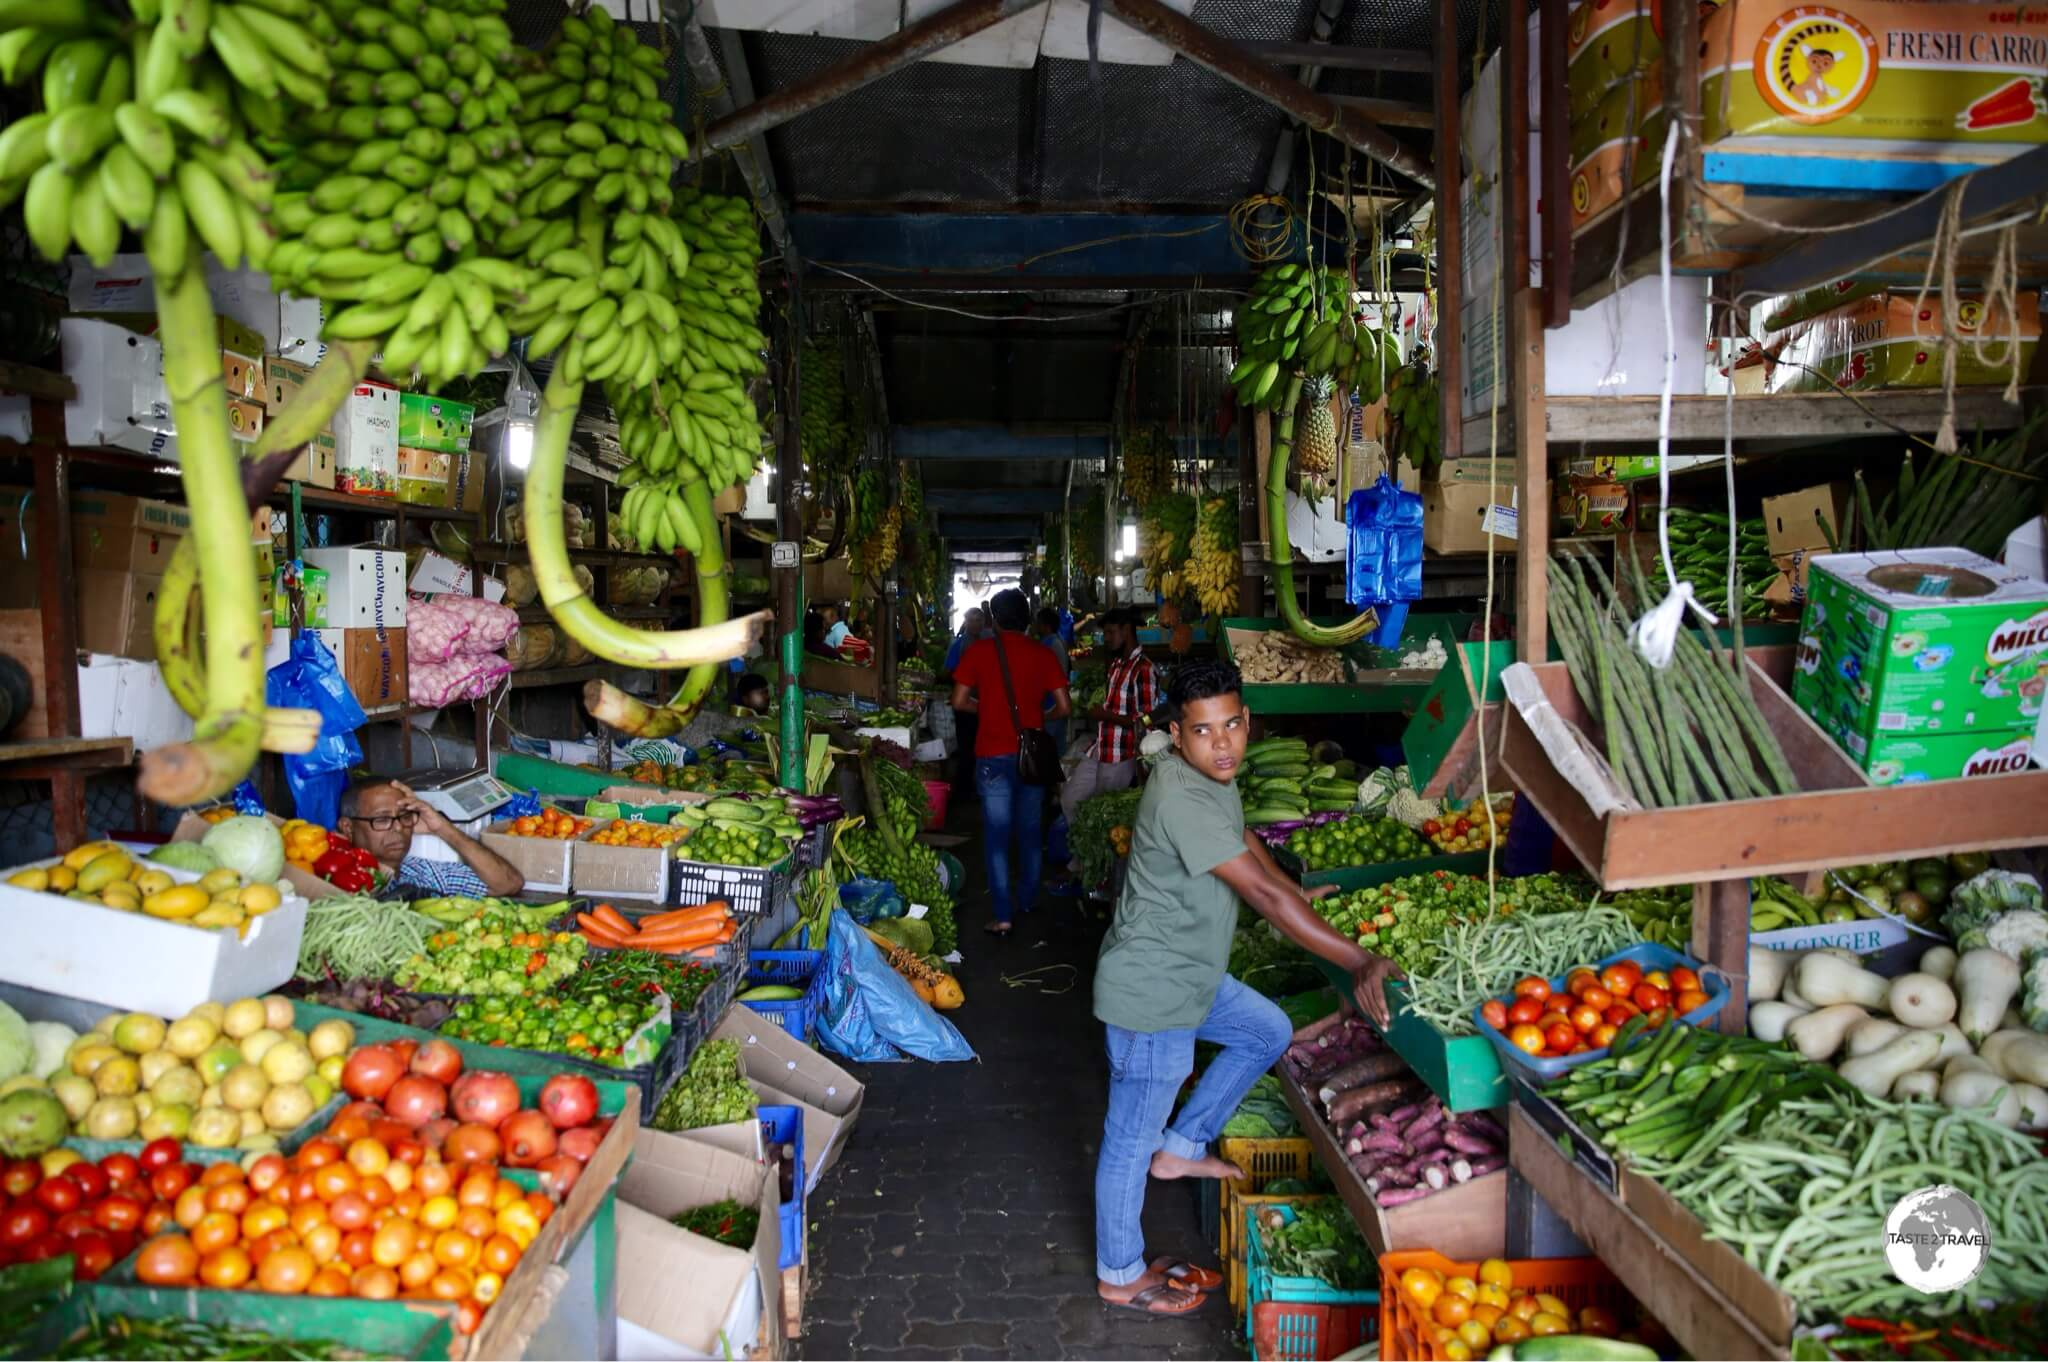 Shopping at the market in Malé.